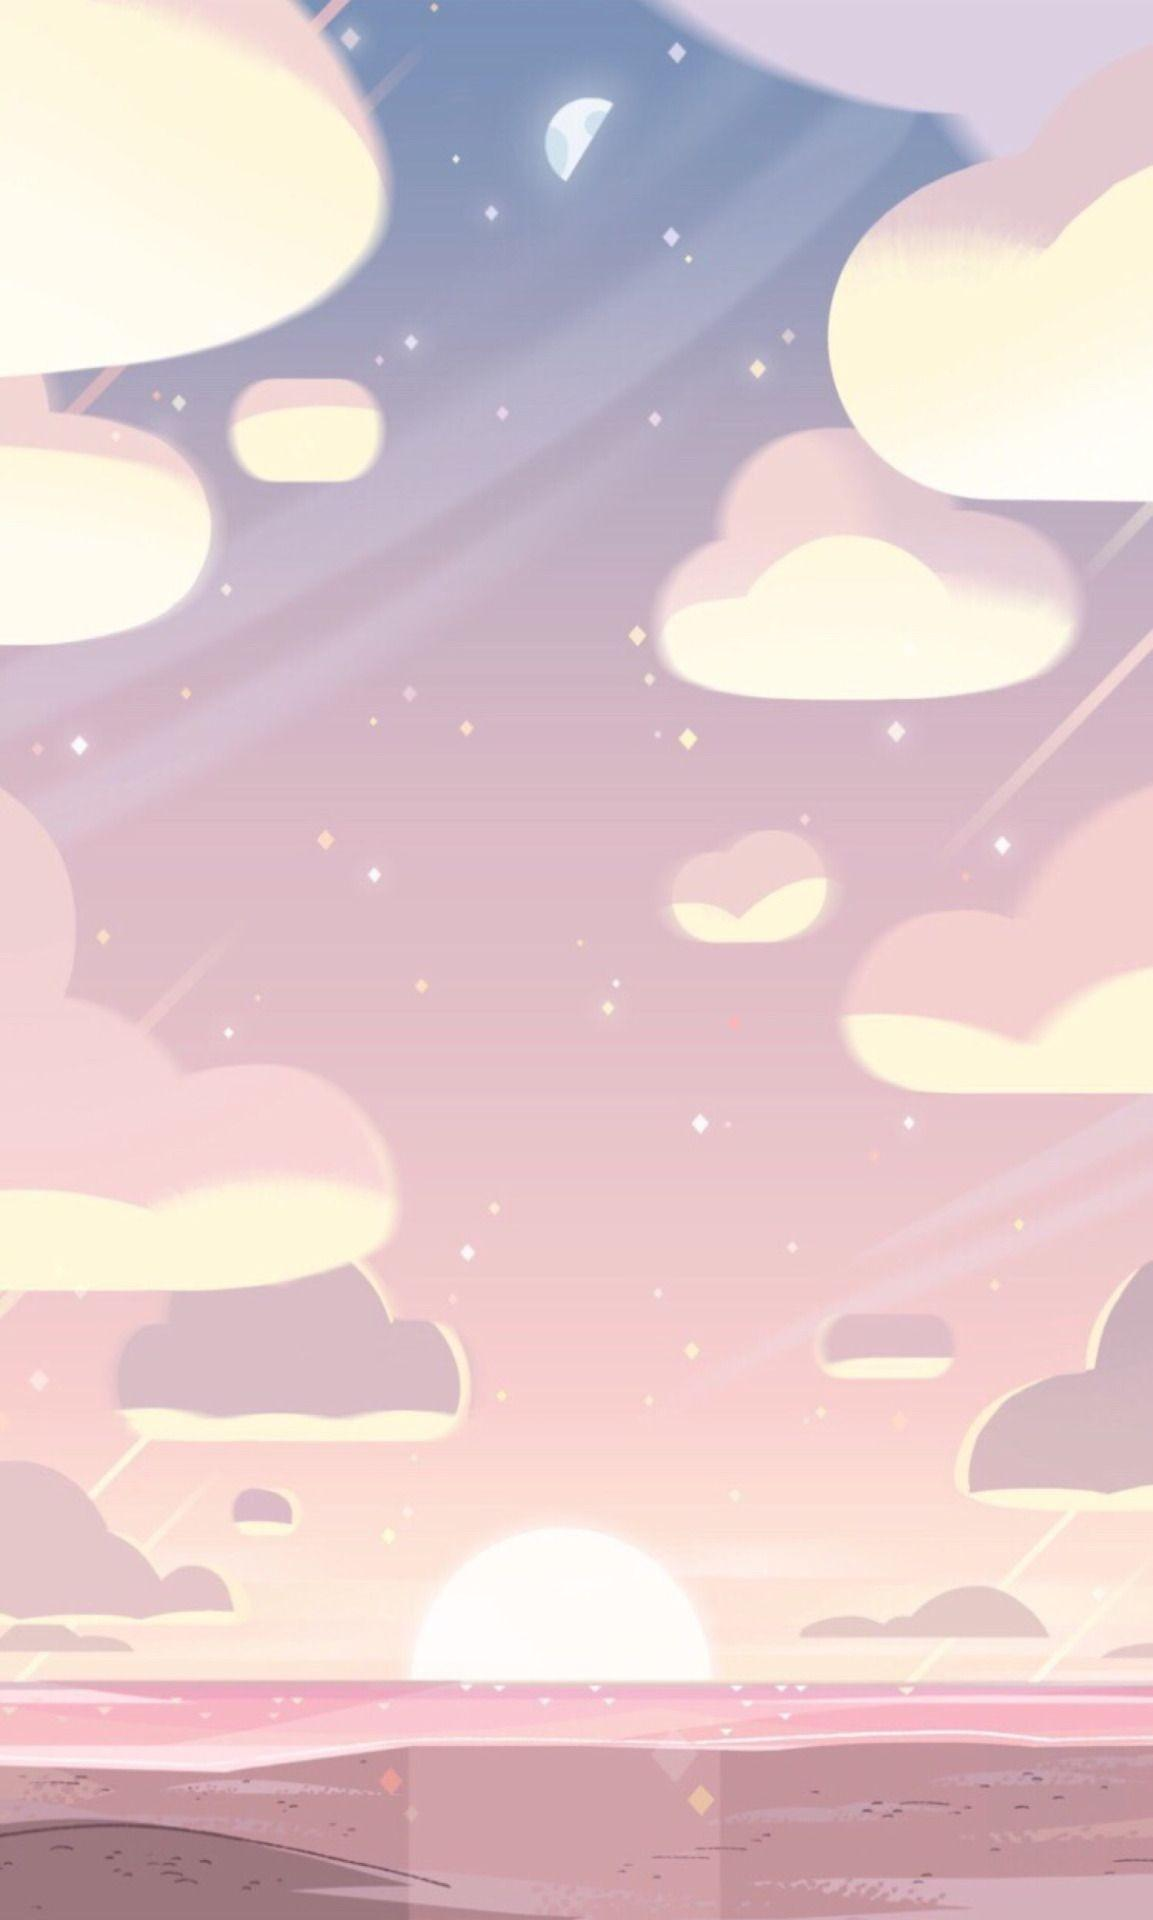 Cute Aesthetic Backgrounds For Computer : aesthetic, backgrounds, computer, Aesthetic, Wallpapers, Wallpaper